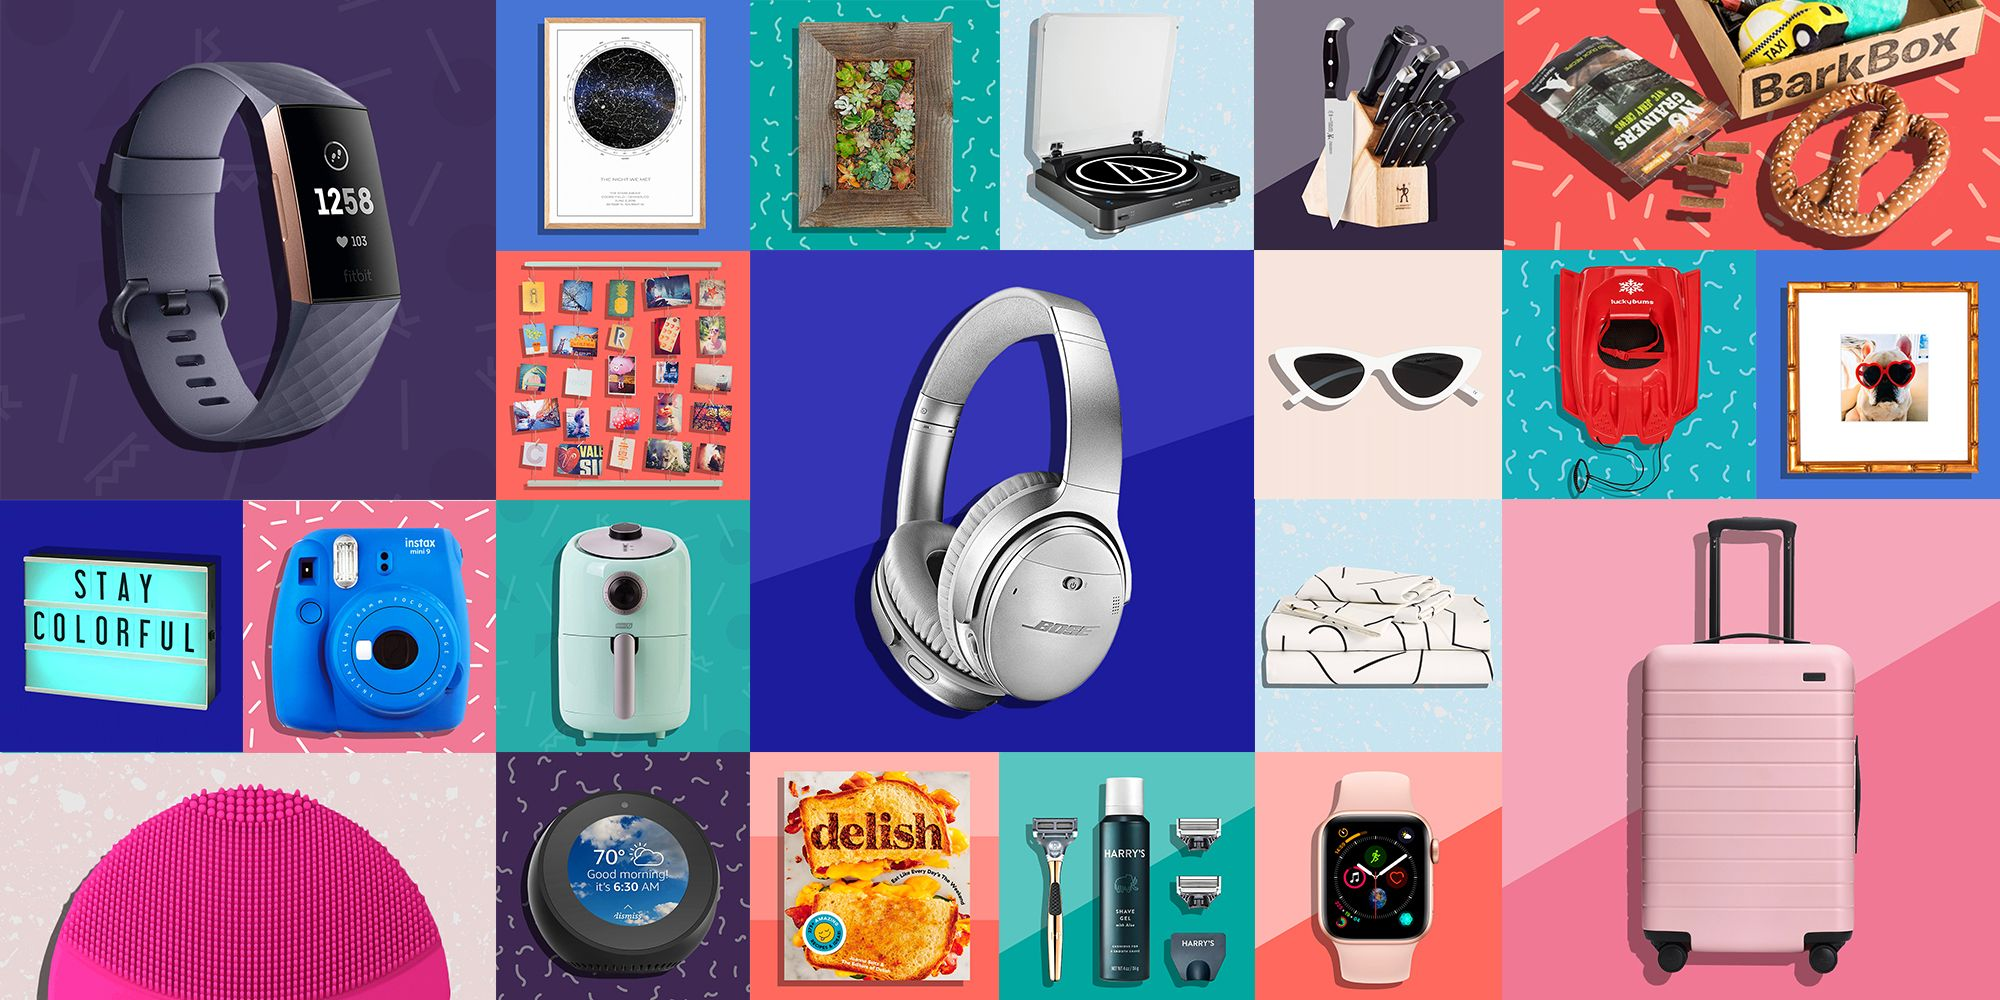 Best Christmas Gift Ideas for Holiday 2019 & 100+ Best Christmas Gifts for 2019 - Top Holiday Gift Ideas